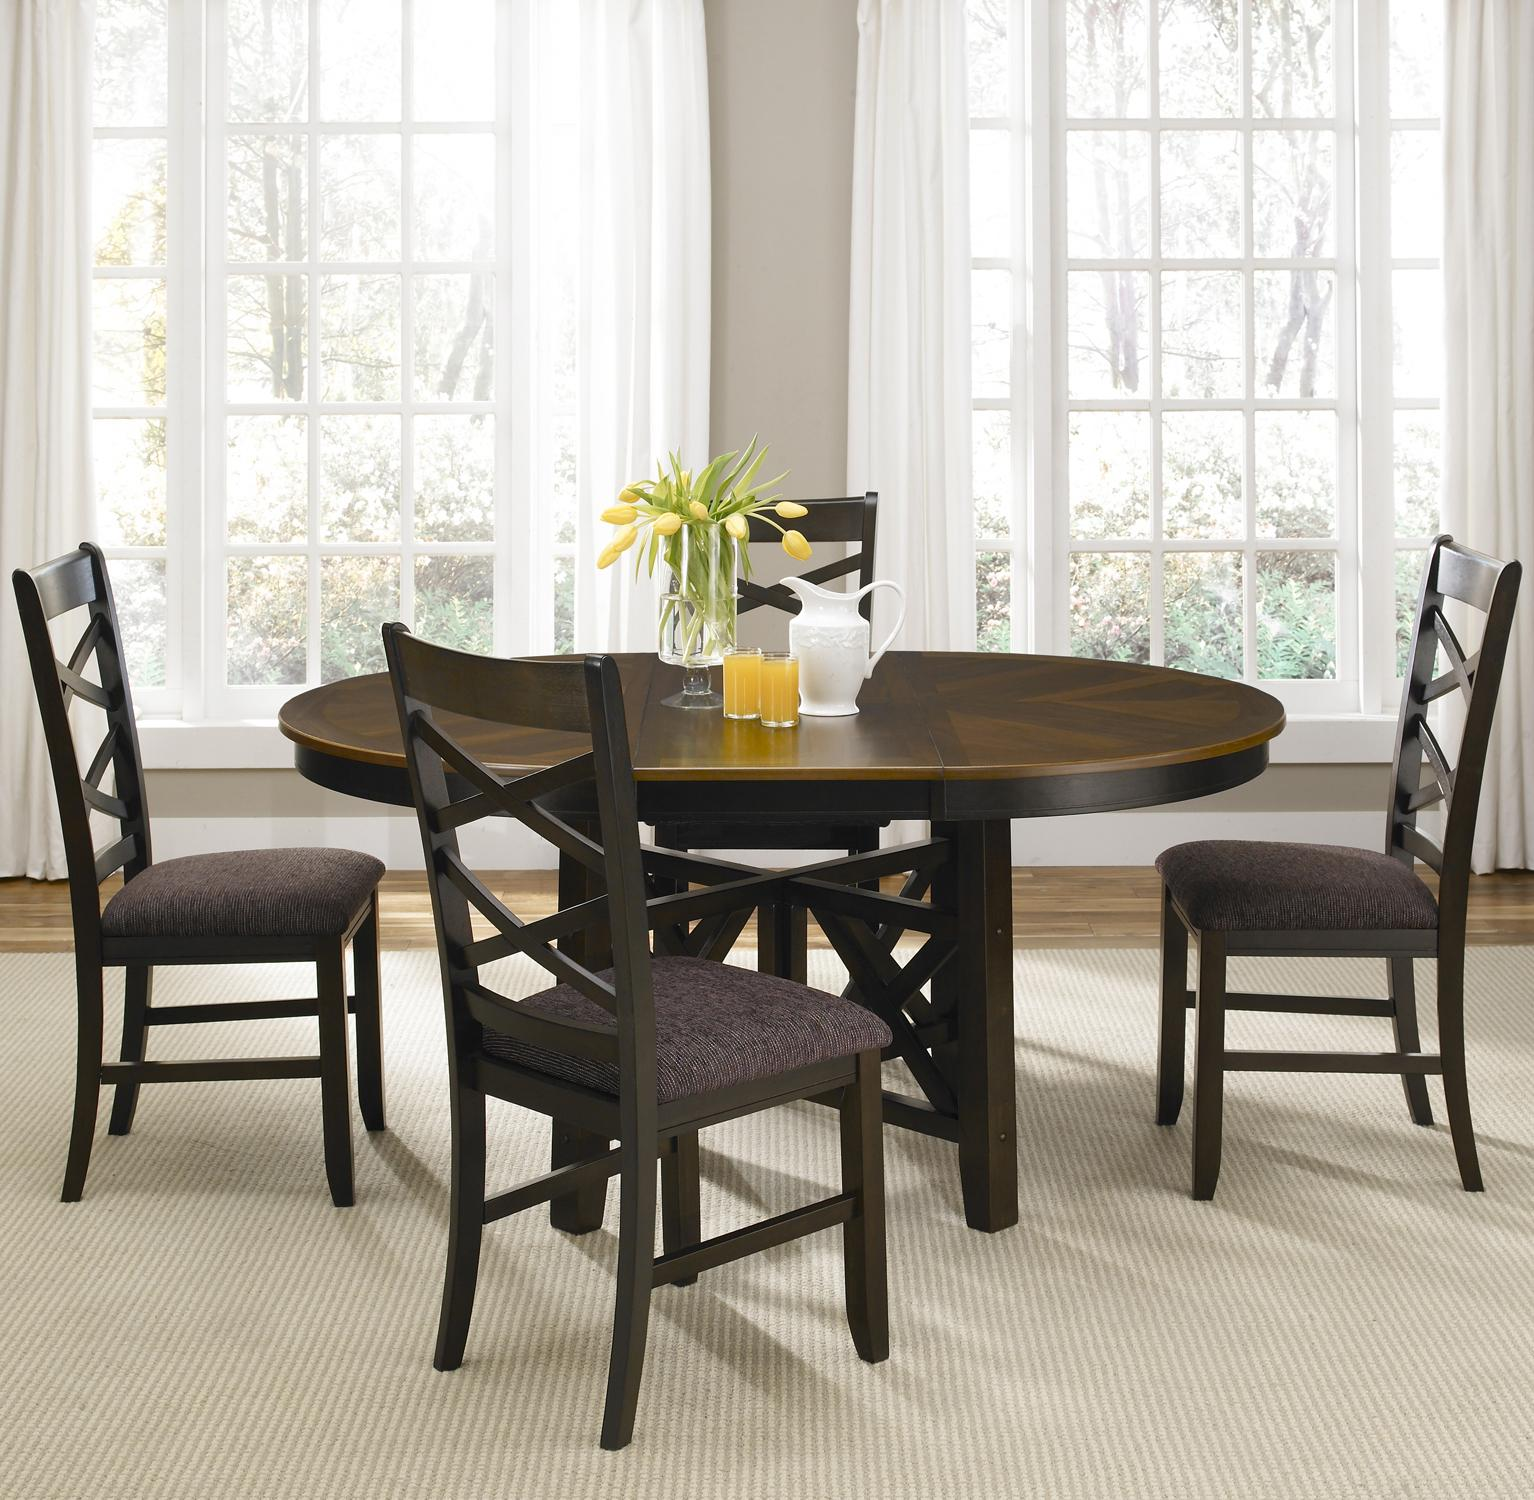 bistro kitchen table Colby Round to Oval Single Pedestal Dining Table with 18 Inch Butterfly Leaf Rotmans Dining Room Table Worcester Boston MA Providence RI